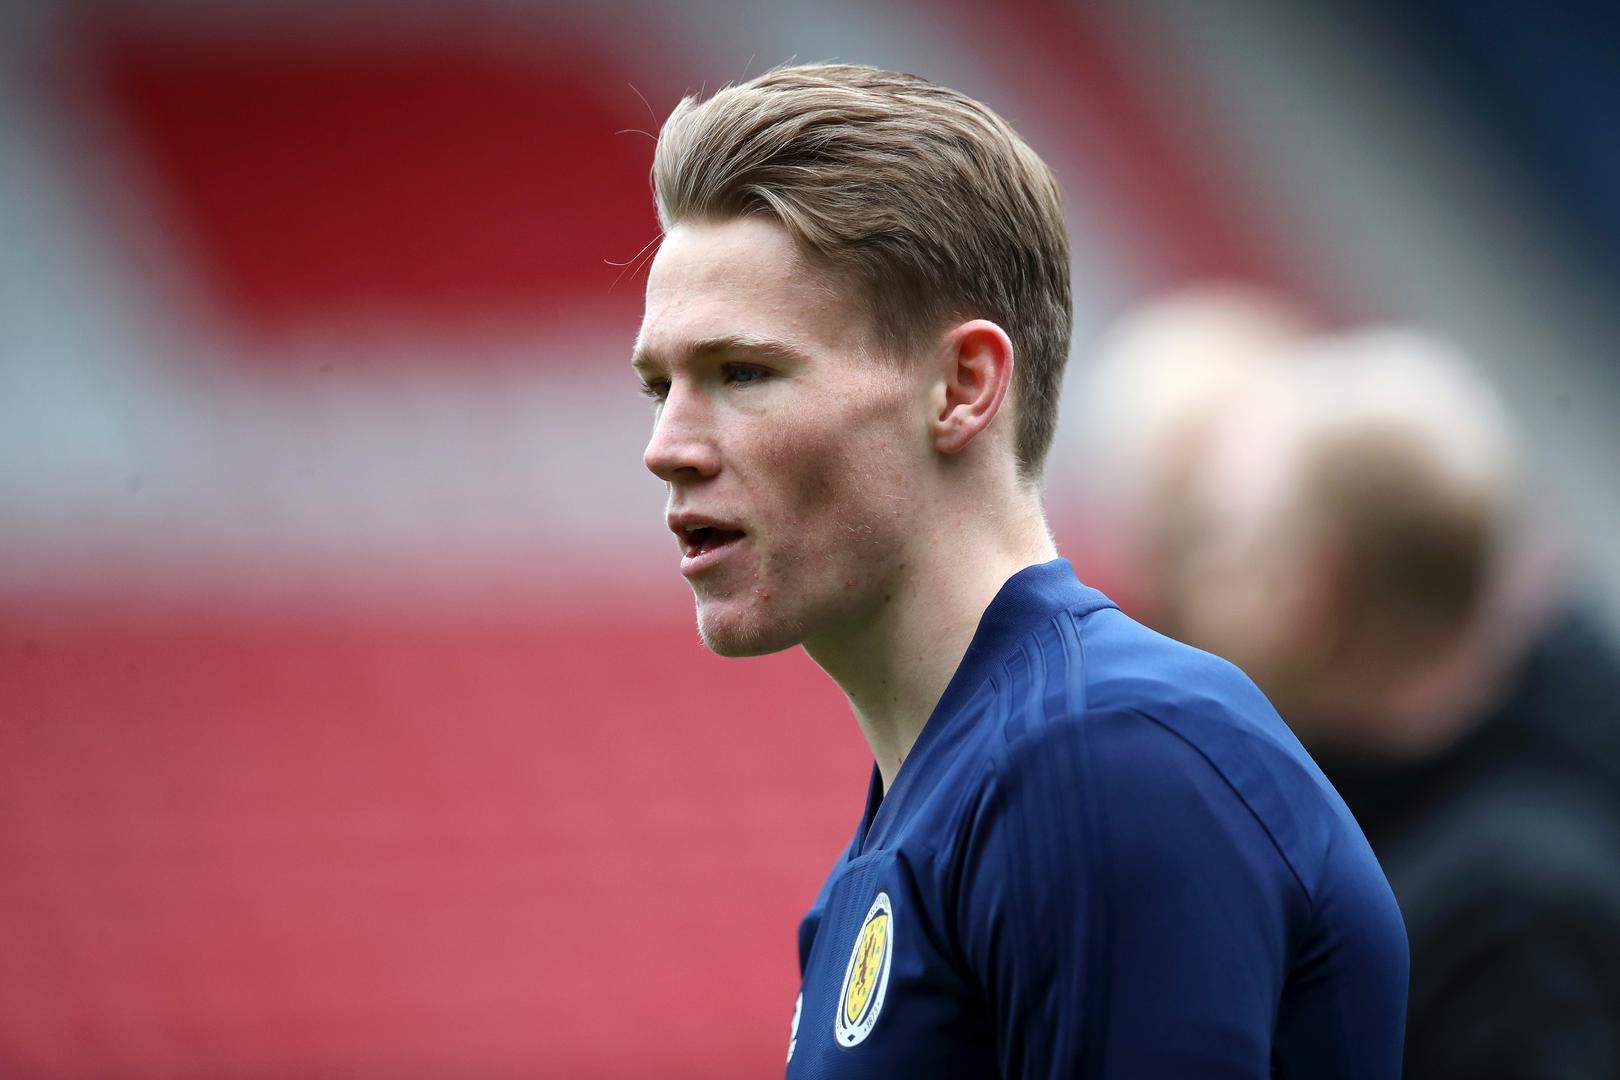 Man United midfielder Scott McTominay looks on during a Scotland training session.